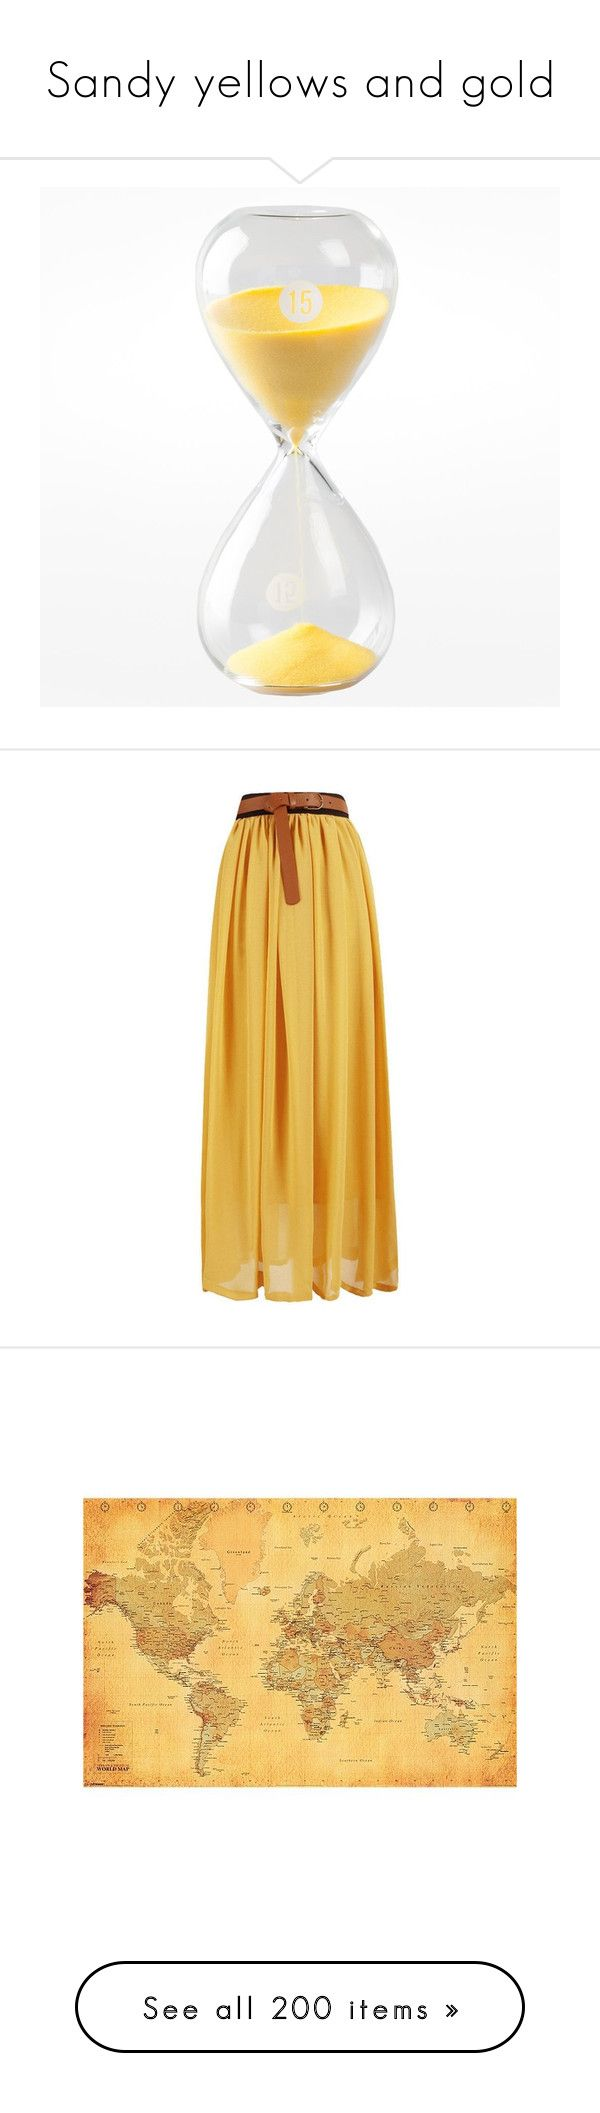 """""""Sandy yellows and gold"""" by ravenleeart ❤ liked on Polyvore featuring home, kitchen & dining, kitchen gadgets & tools, skirts, saias, yellow, high waisted long skirt, high waisted chiffon maxi skirt, chiffon maxi skirt and high-waisted maxi skirt"""